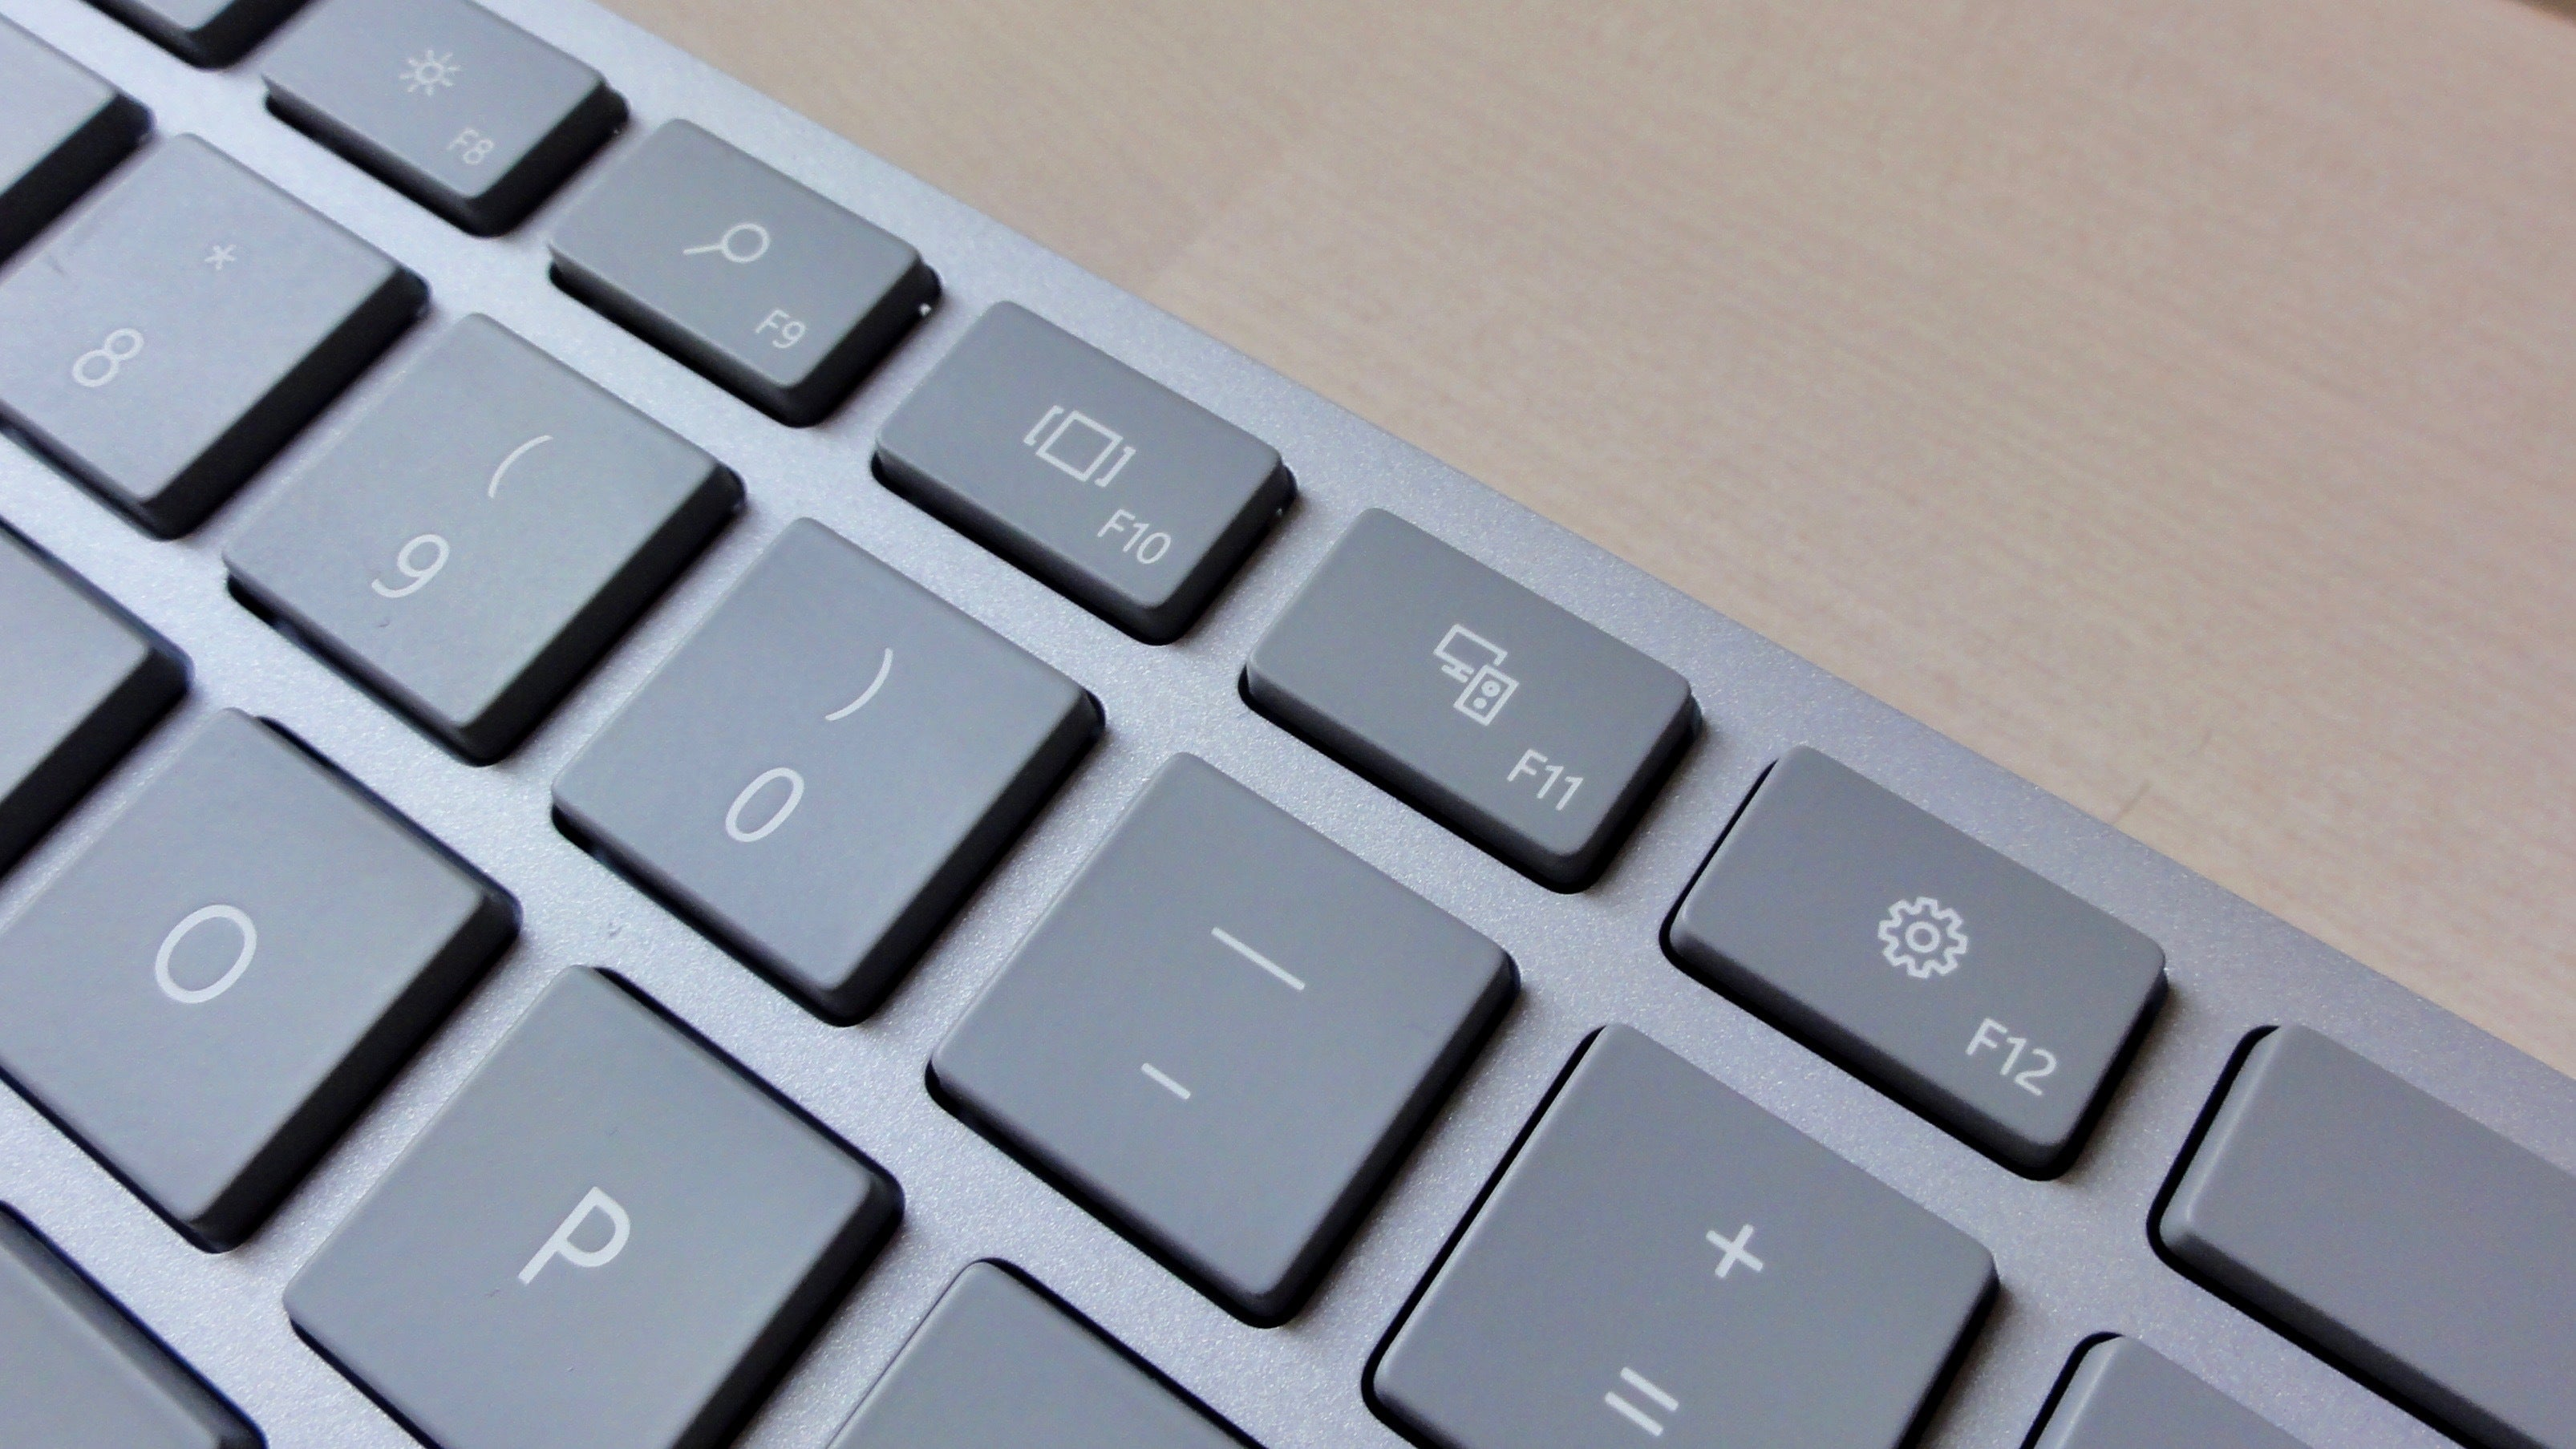 Microsoft Modern Keyboard Review The Sleek Design And Fingerprint Scanner Will Cost You Good